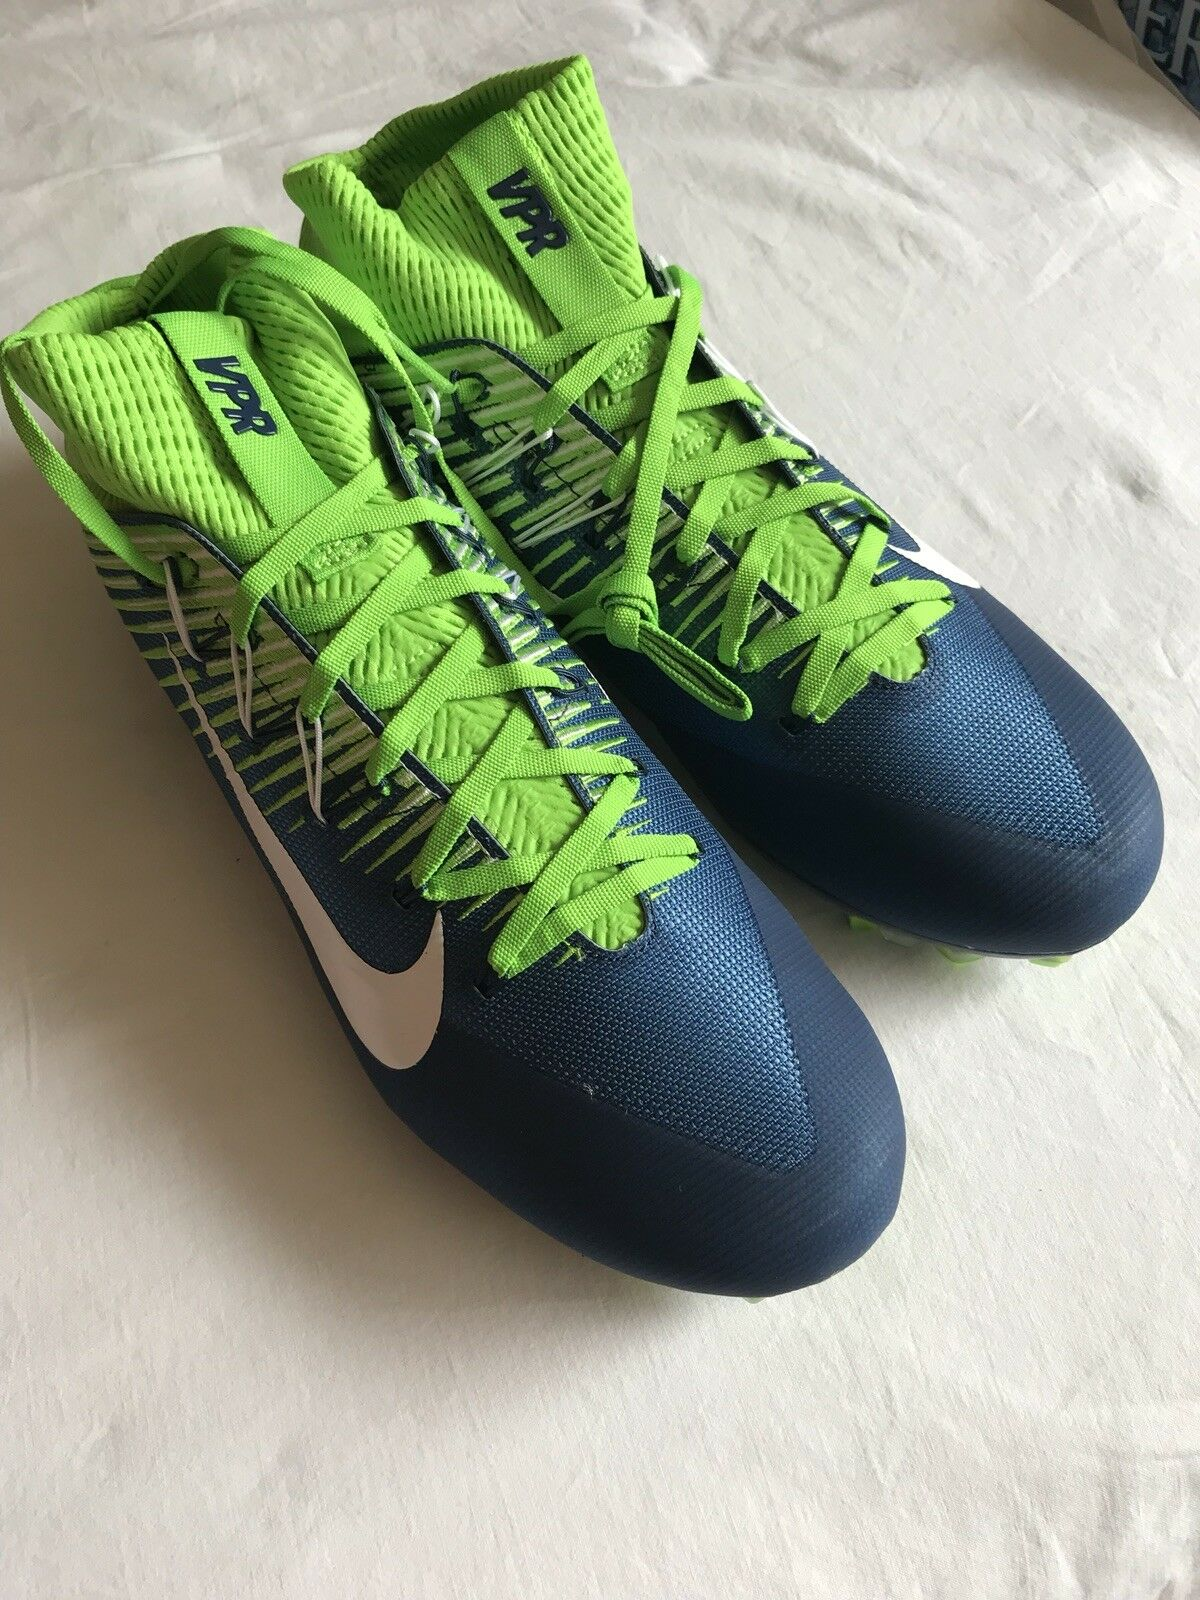 100a629ac NIKE VAPOR UNTOUCHABLE 2 FOOTBALL CLEATS SIZE 12.5 Navy Actn Green White